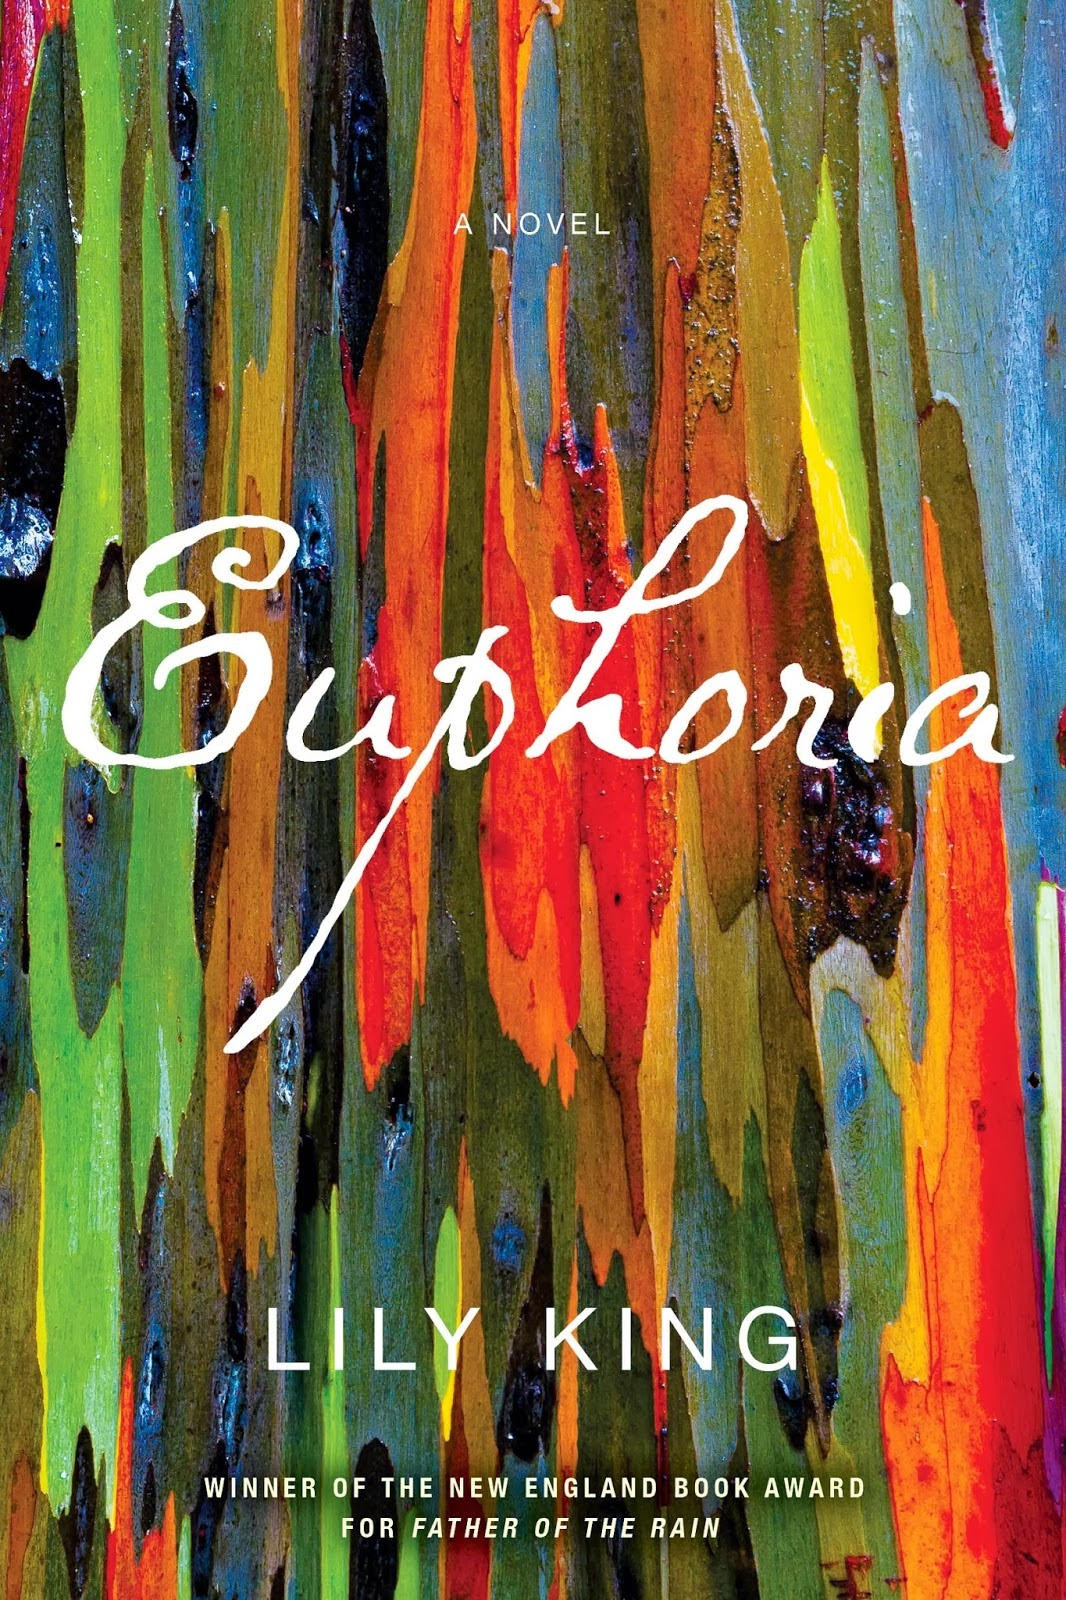 http://discover.halifaxpubliclibraries.ca/?q=title:euphoria%20author:king